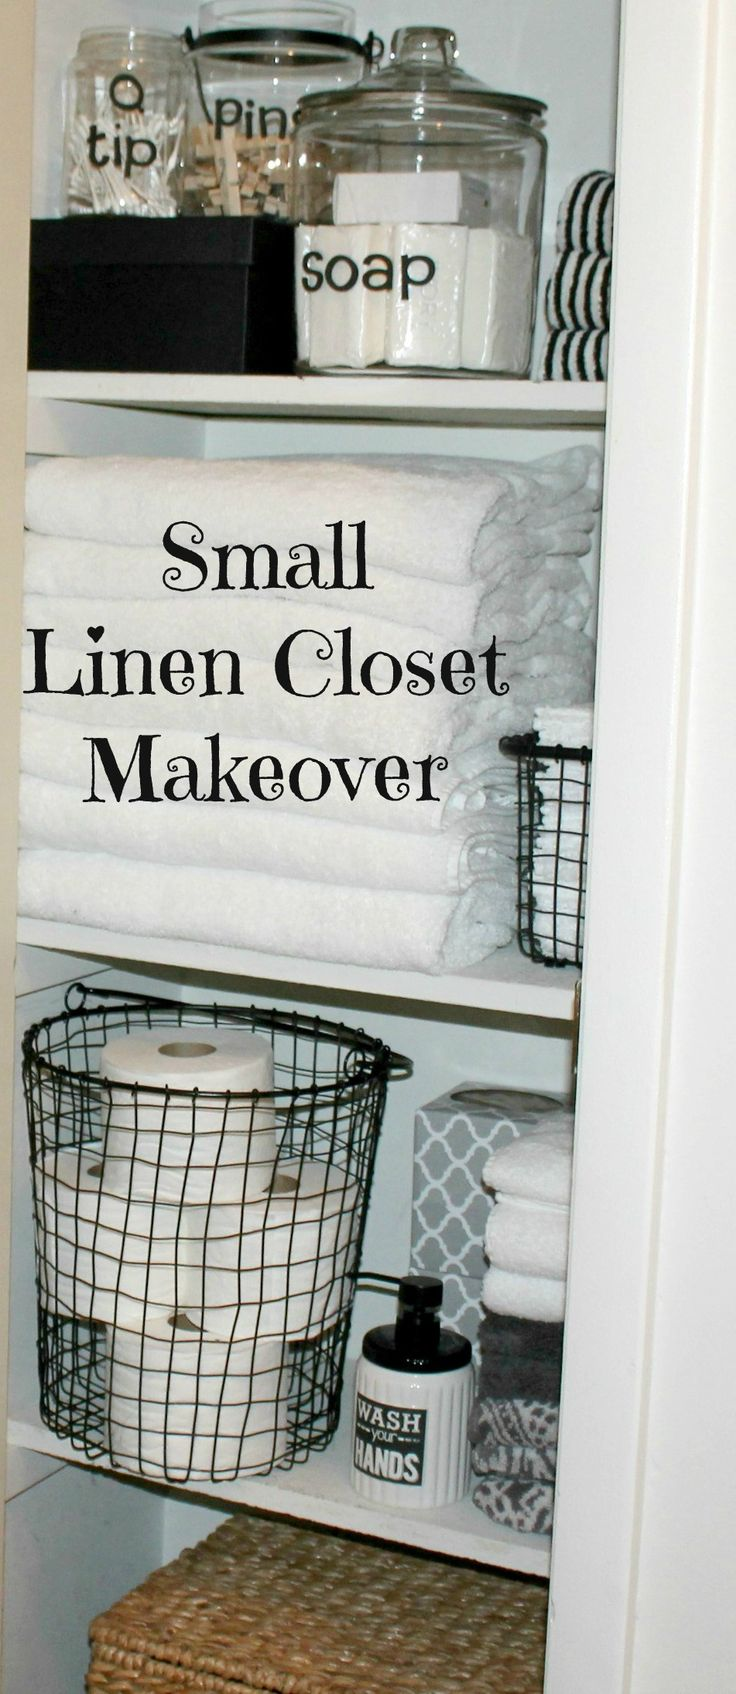 Small Linen Closet Ideas For Easy Organization.